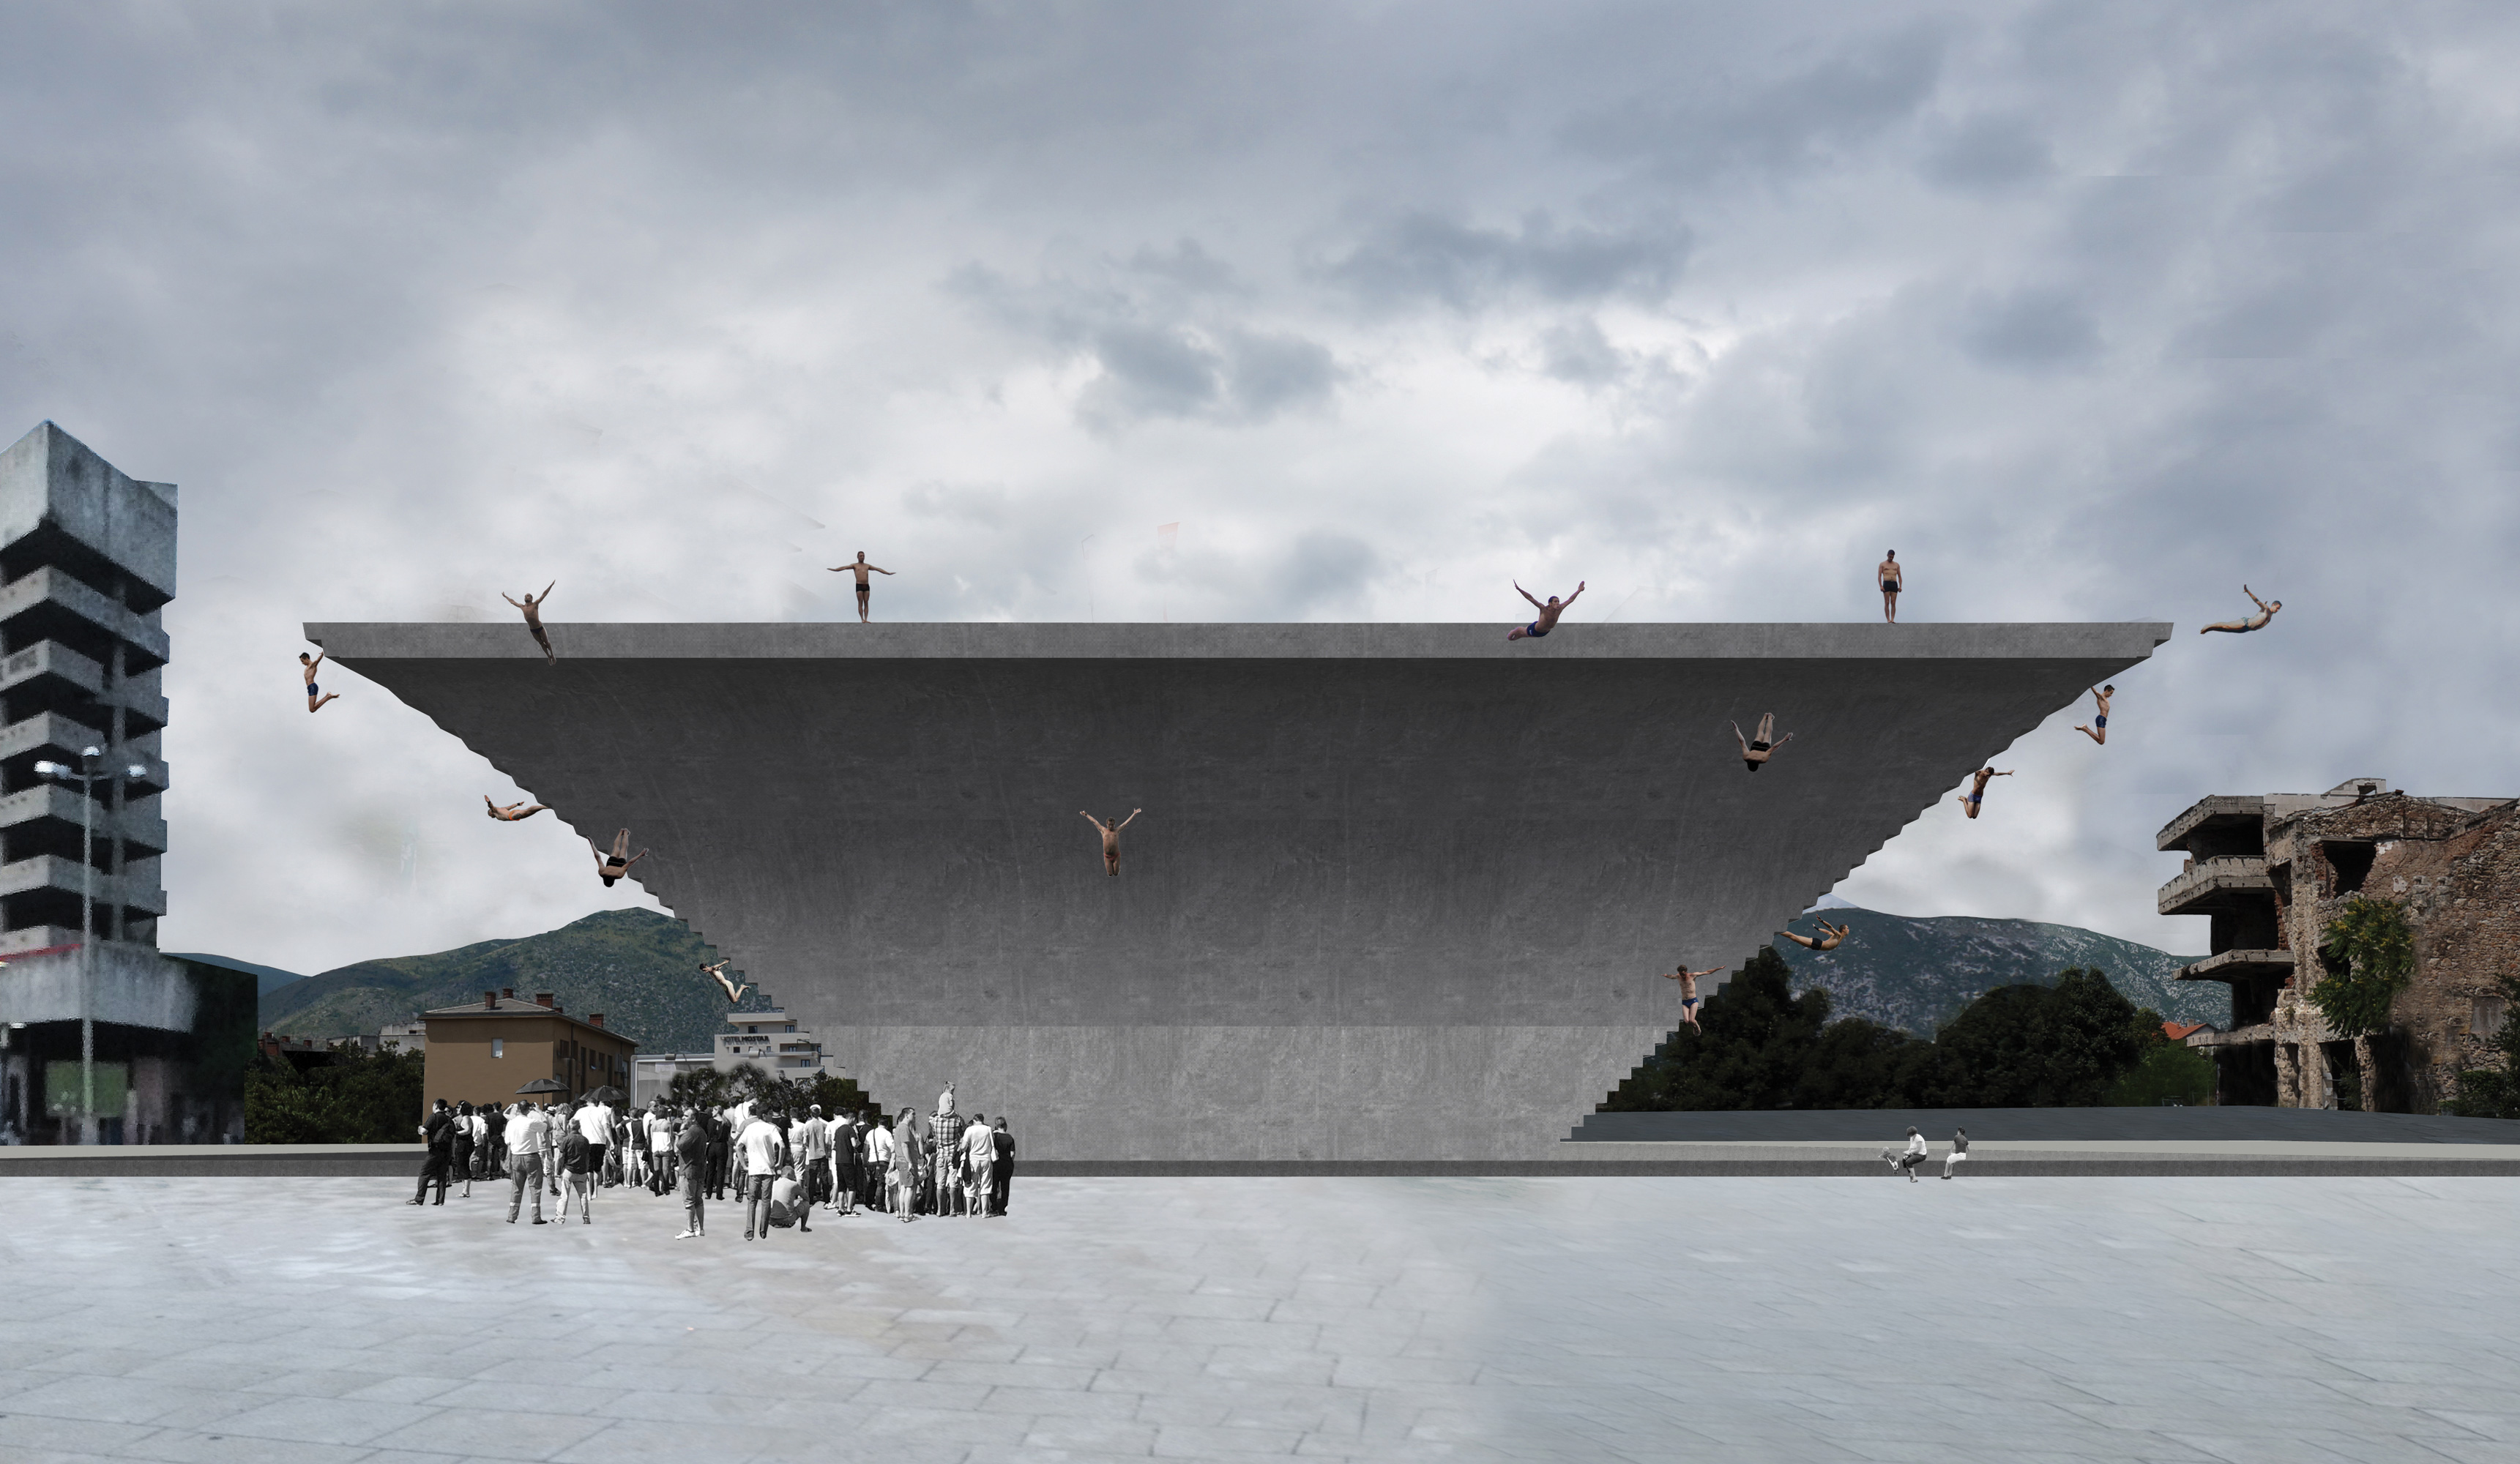 backside: Design intervention: a building with diving as its function and as an open public space, seen from the front.